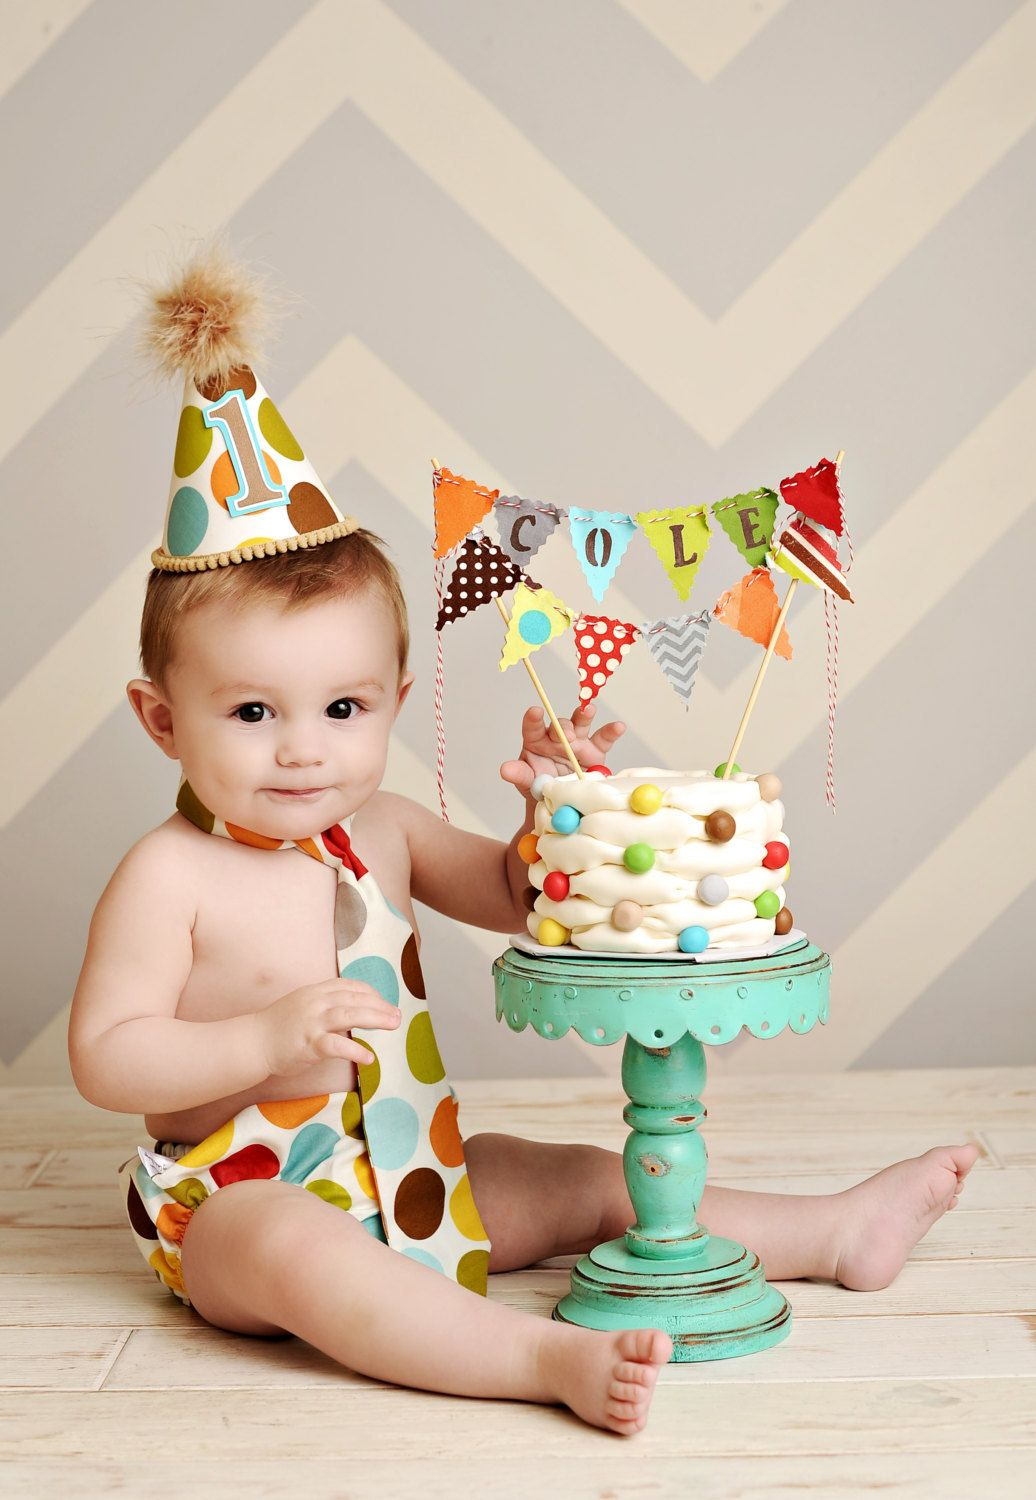 Baby Boy  Toddler Cake Smash Birthday Outfit Including A Necktie - Cake smash first birthday